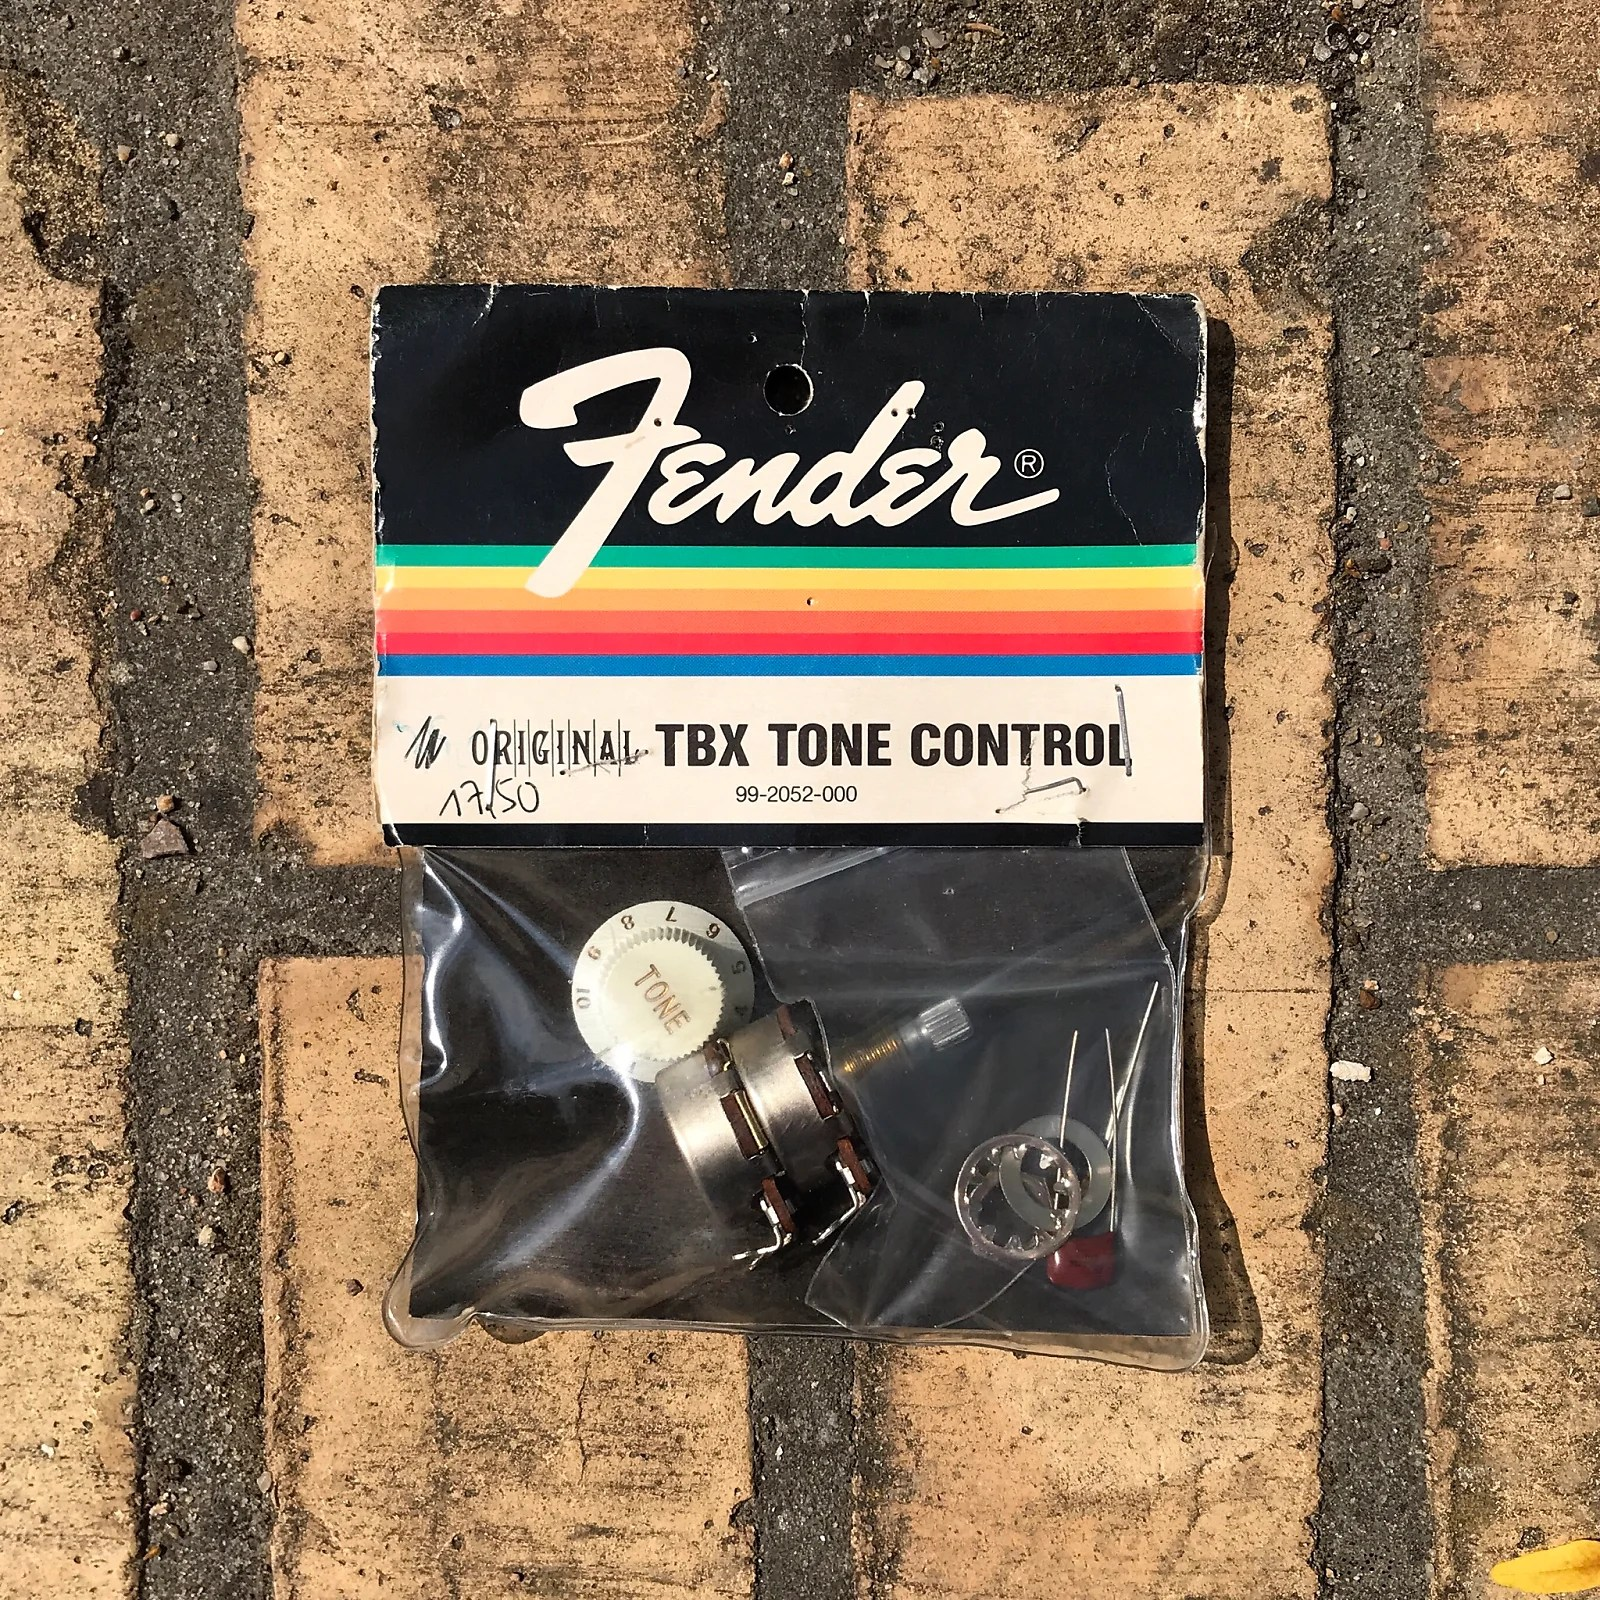 hight resolution of  fender tbx tone control set vintage 0992052000 for stratocaster or tele